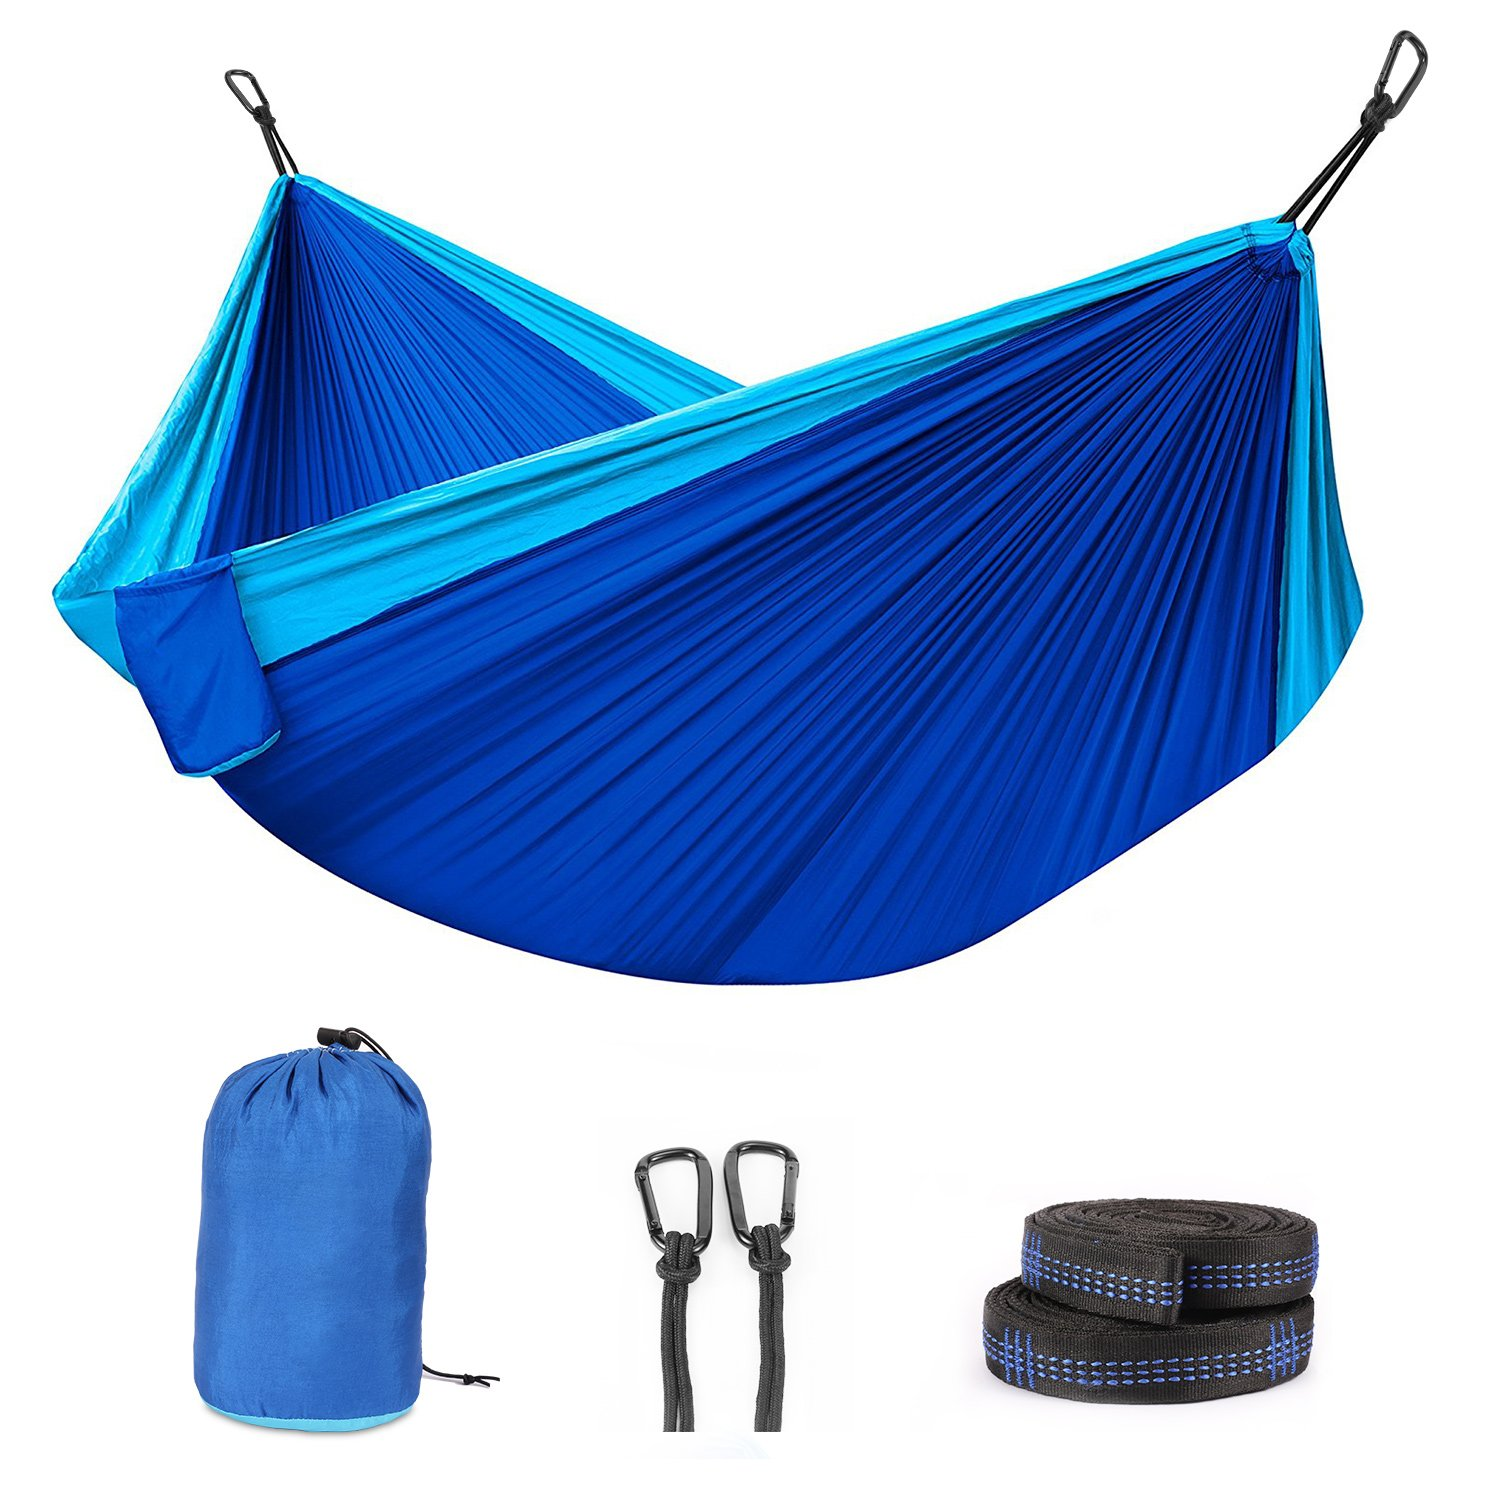 FYLINA Double Camping Hammock with 2 Tree Straps, Carabiner, Portable Lightweight Parachute Nylon Outdoor Hammock for Backpacking, Travelling, Survival, Beach Yard Garden Relaxing(Hammock)